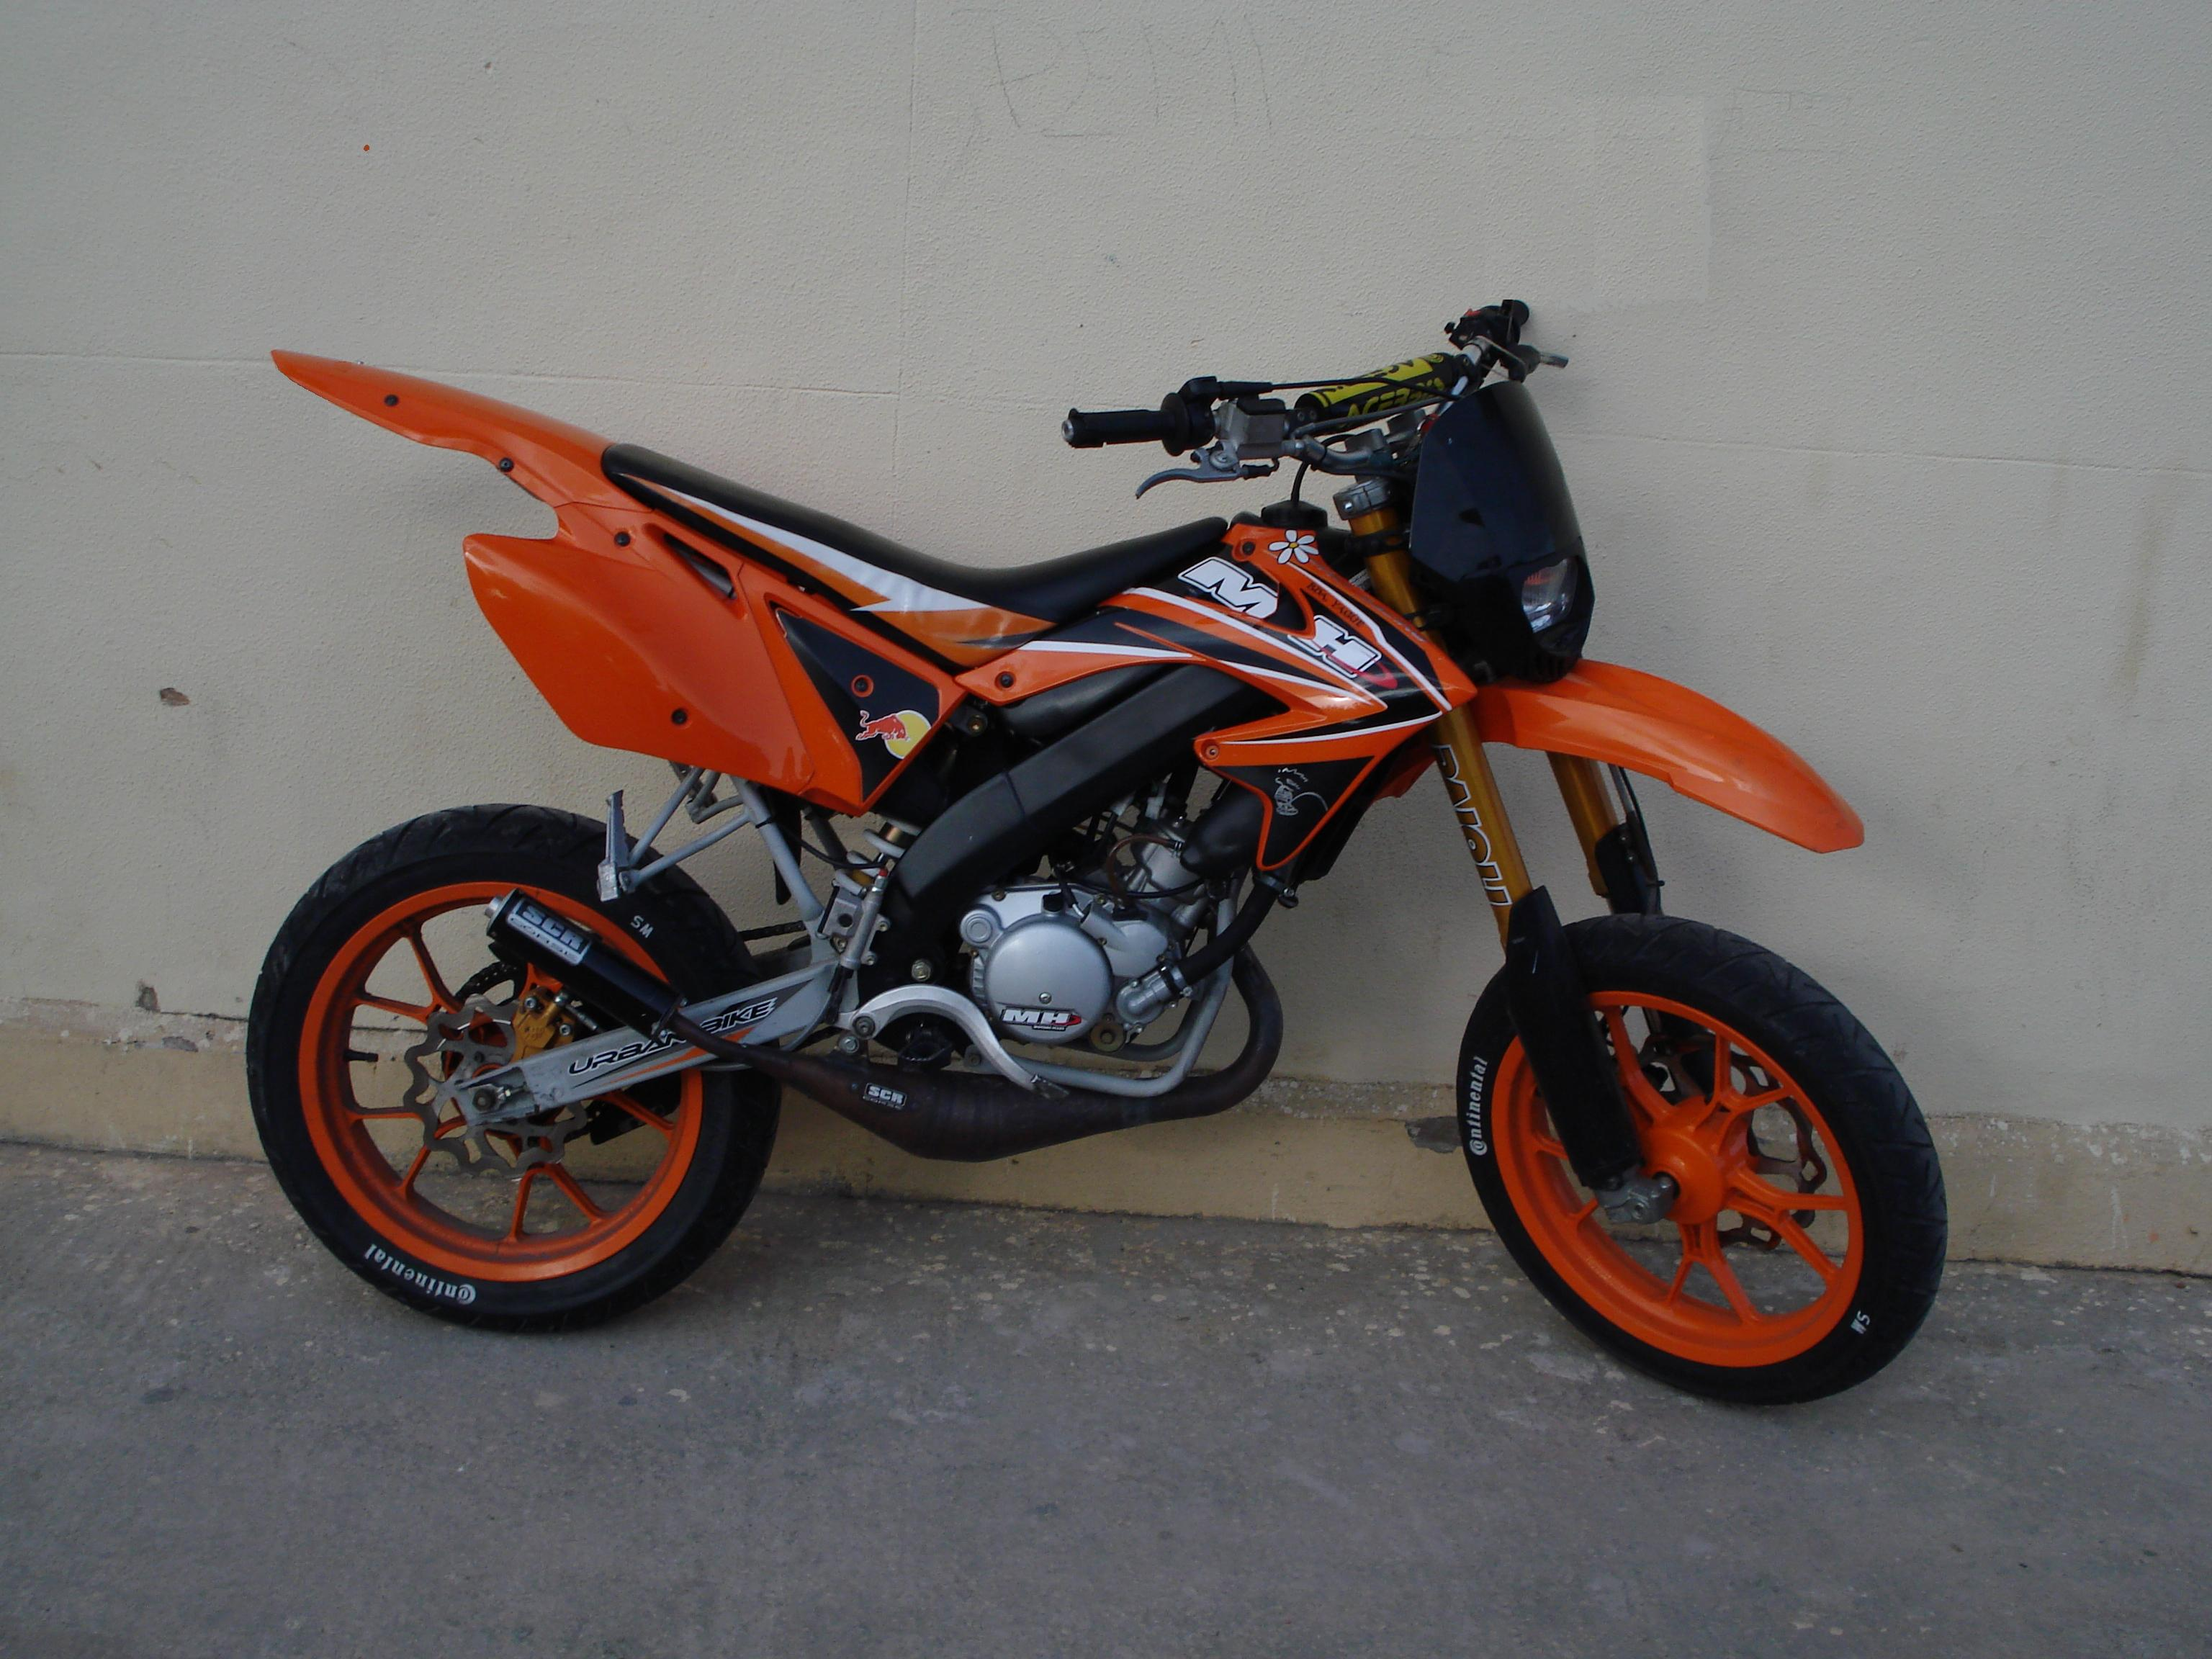 Motorhispania Ryz 50 Urban Bike 2007 images #112409